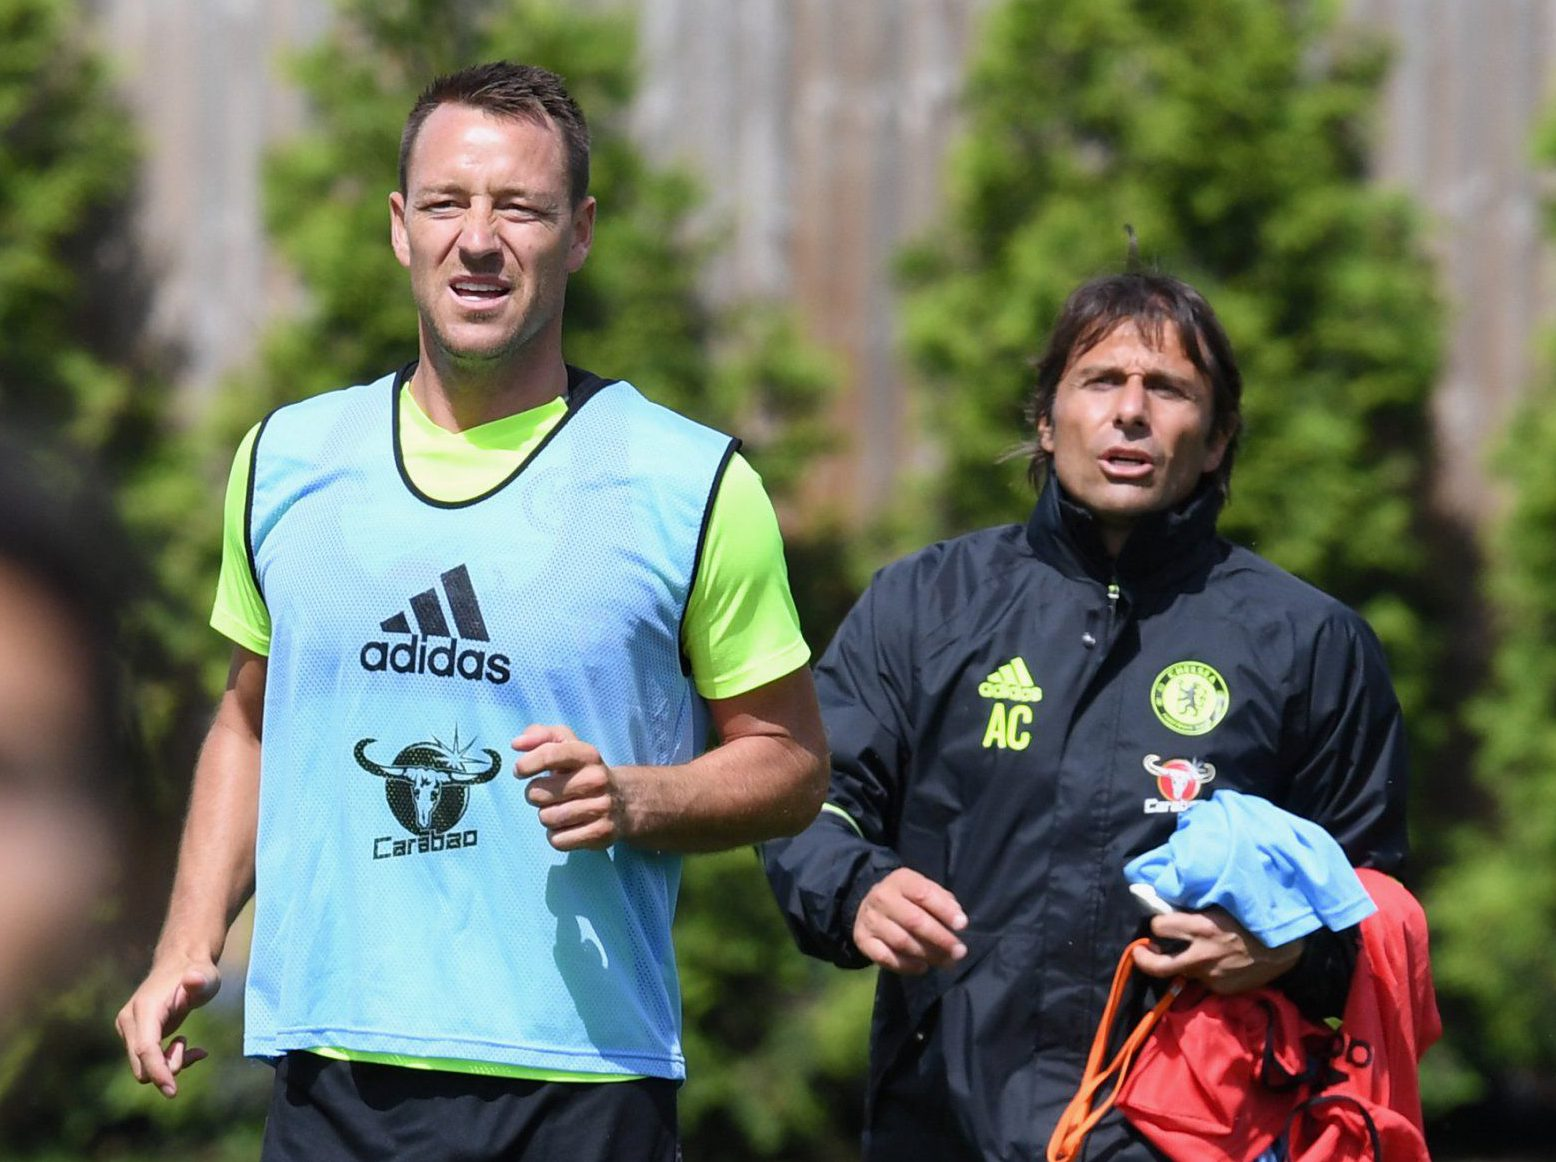 COBHAM, ENGLAND - JULY 13: Antonio Conte, John Terry at Chelsea Training Ground on July 13, 2016 in Cobham, England. (Photo by Darren Walsh/Chelsea FC via Getty Images)